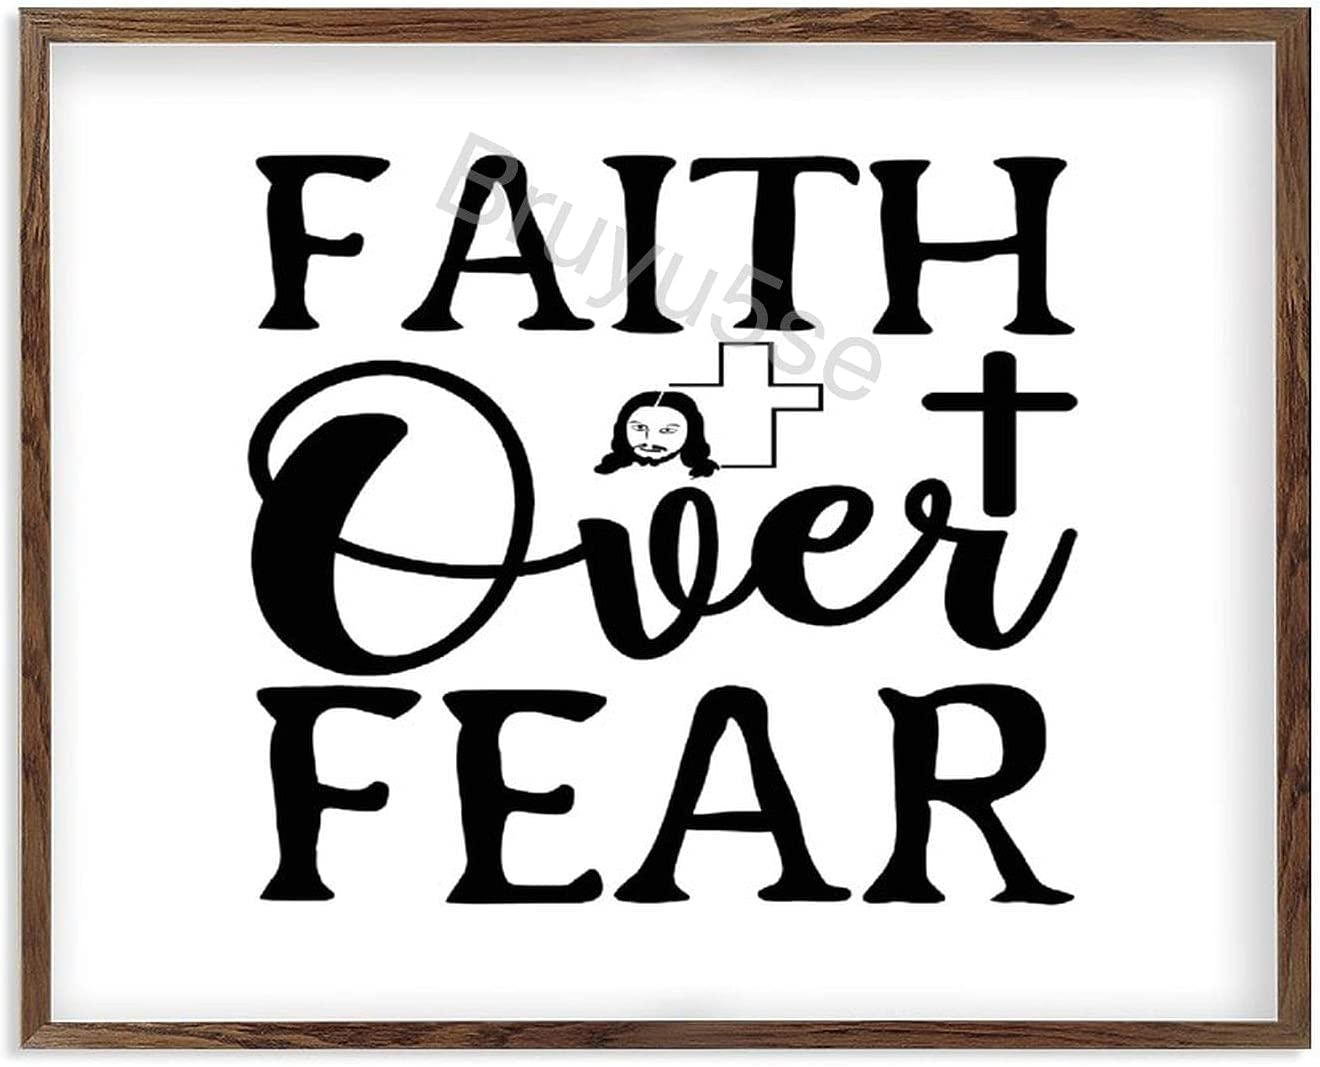 Framed 送料無料お手入れ要らず Wooden Signs Faith Over Rustic Home Decoration 推奨 Fear Farm